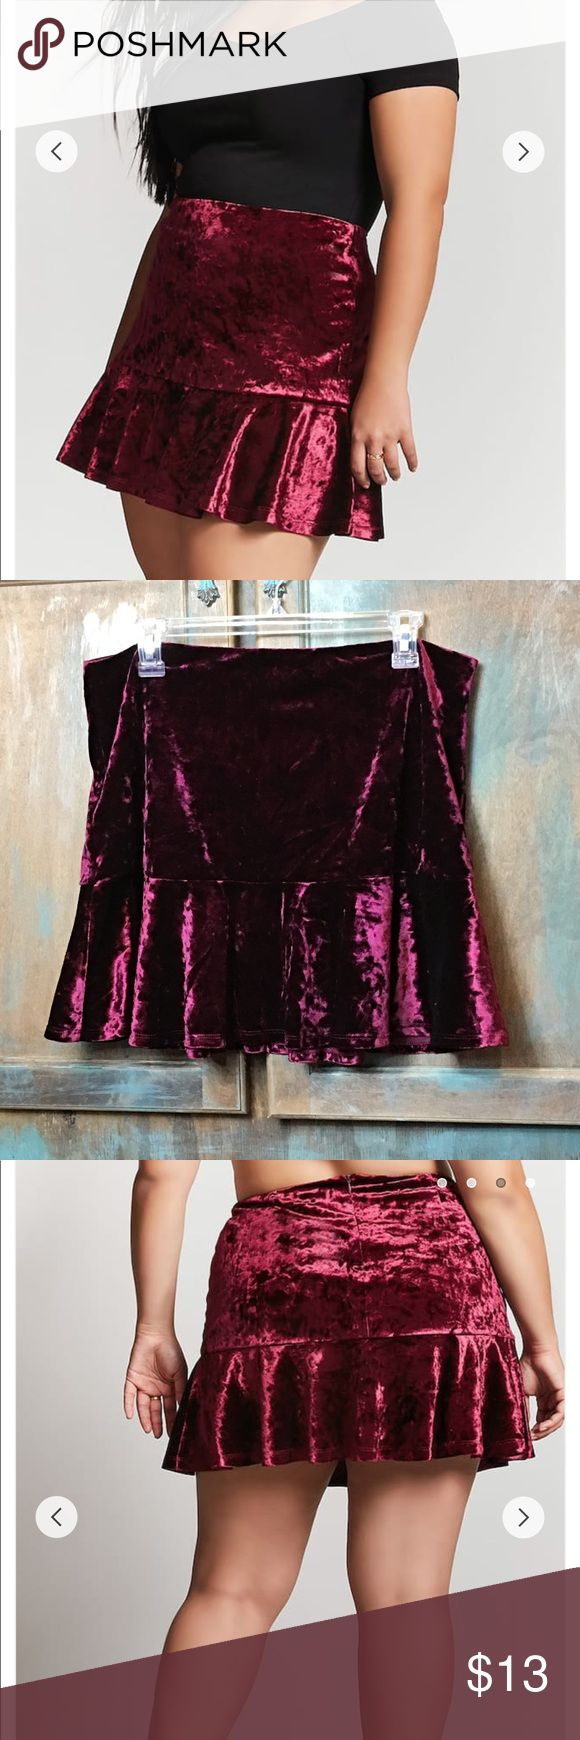 🖤NWT Forever 21+ Velvet Skirt🖤 Brand new never worn with tags plus size velvet skirt! Super soft and silky on the inside has a little stretch and a zipper in the back, very sexy and perfect for a Christmas date! No holes or damages! Perfect Christmas Present!🎅🏼🎄 Forever 21 Skirts Mini